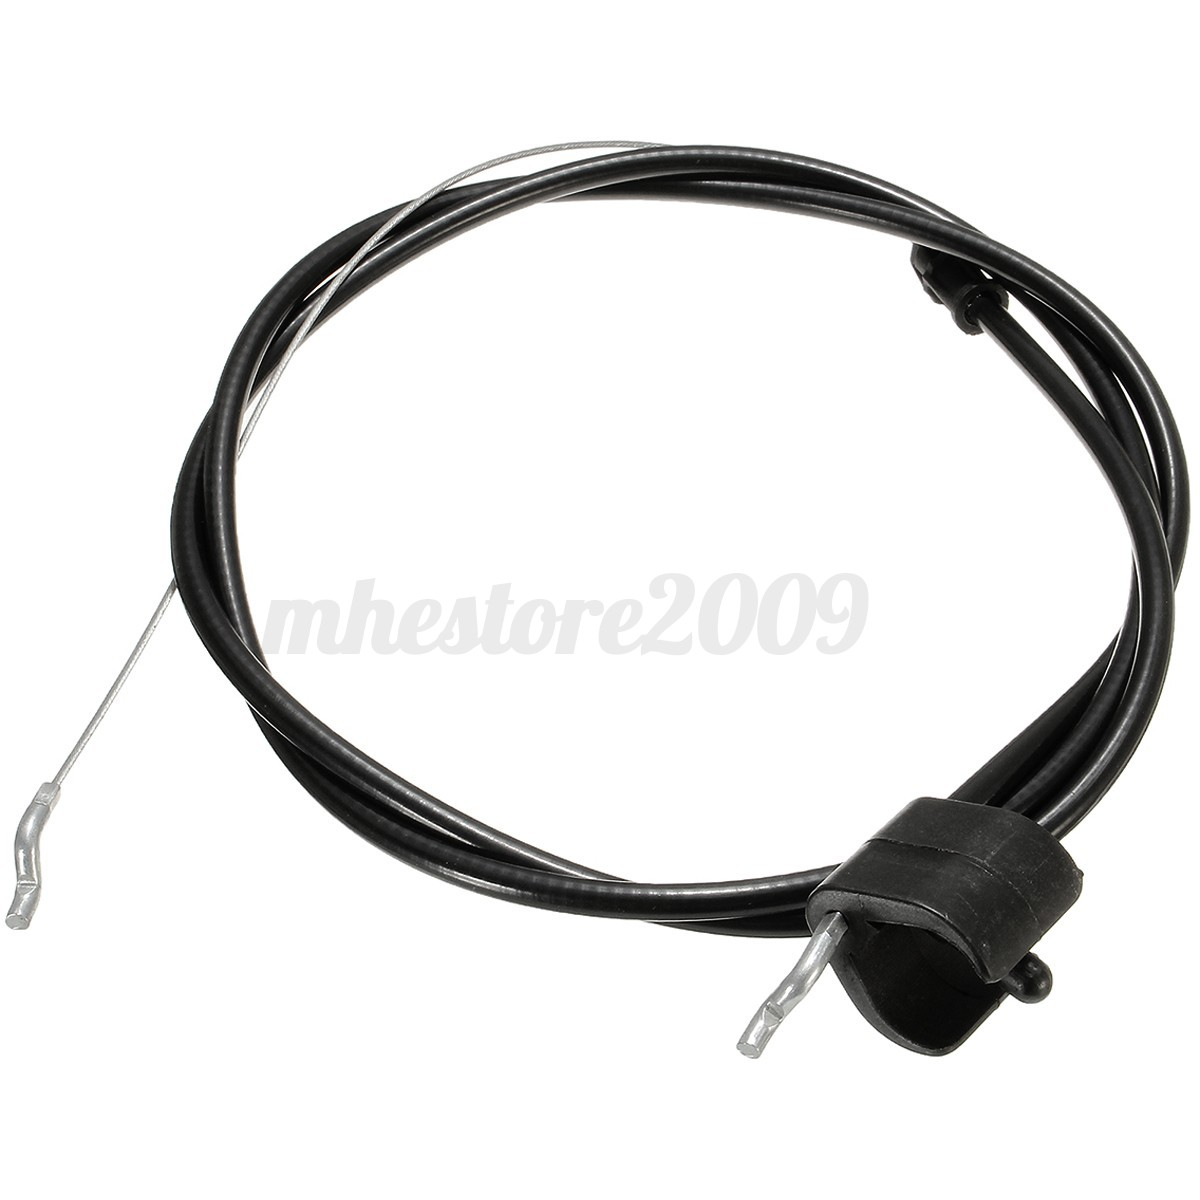 Bend Pull Control Cable Only : Push lawn mower throttle pull control cable for husqvarna